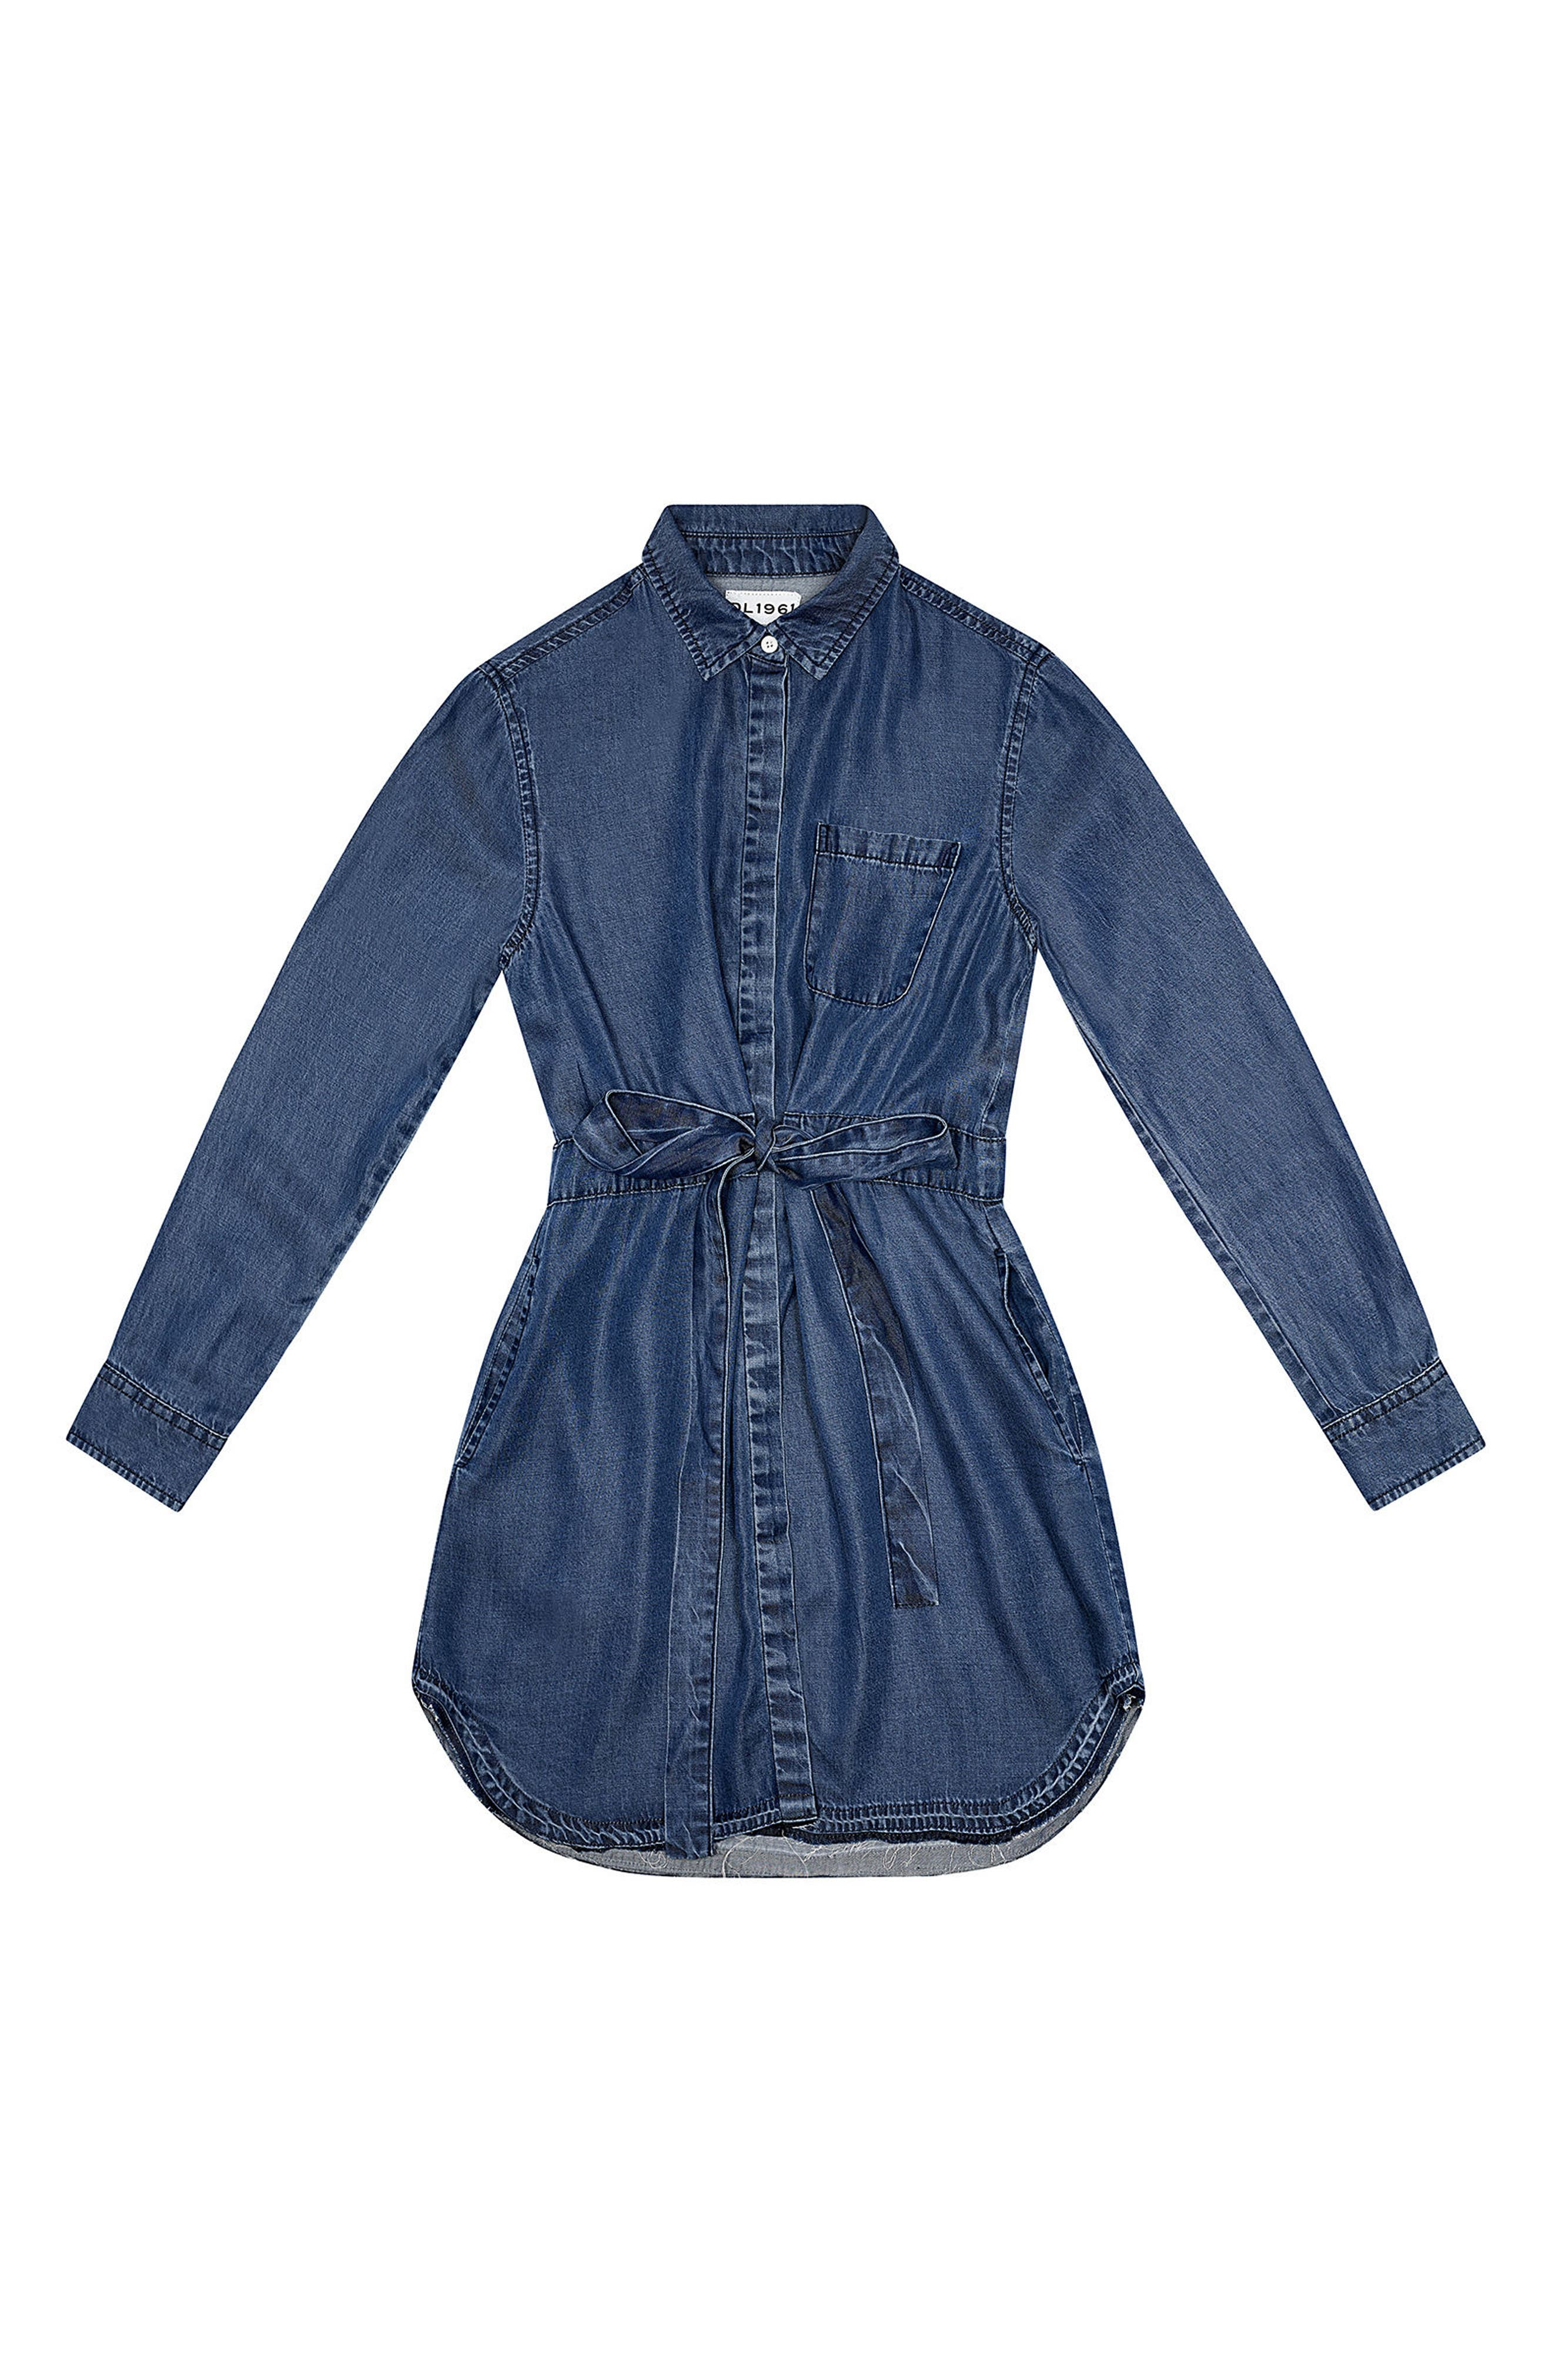 Alternate Image 1 Selected - DL1961 Chambray Shirtdress (Big Girls)